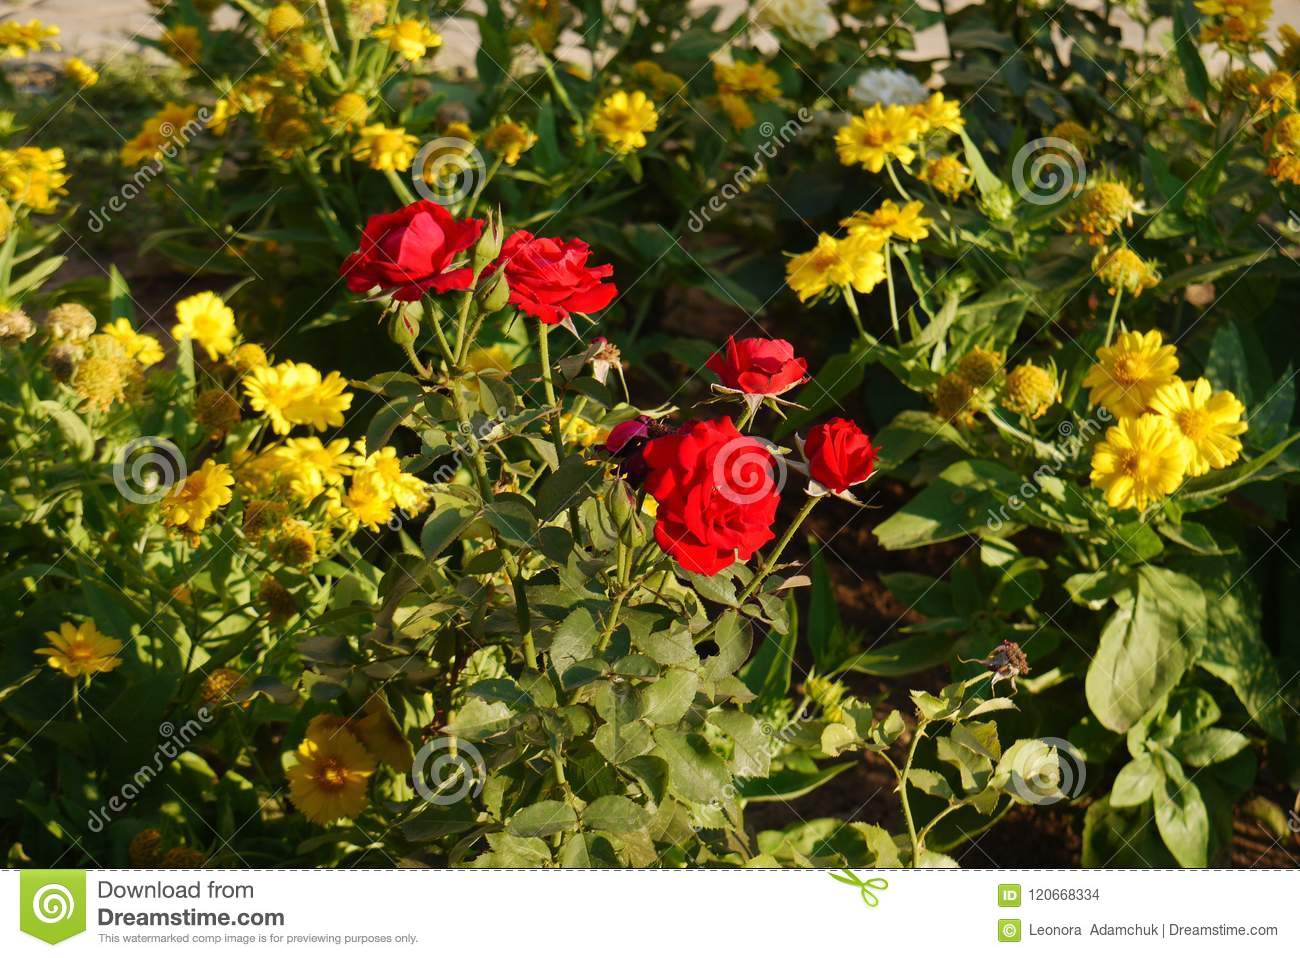 A Bush Of Red Roses Surrounded By Dahlia Flowers Which Are Called